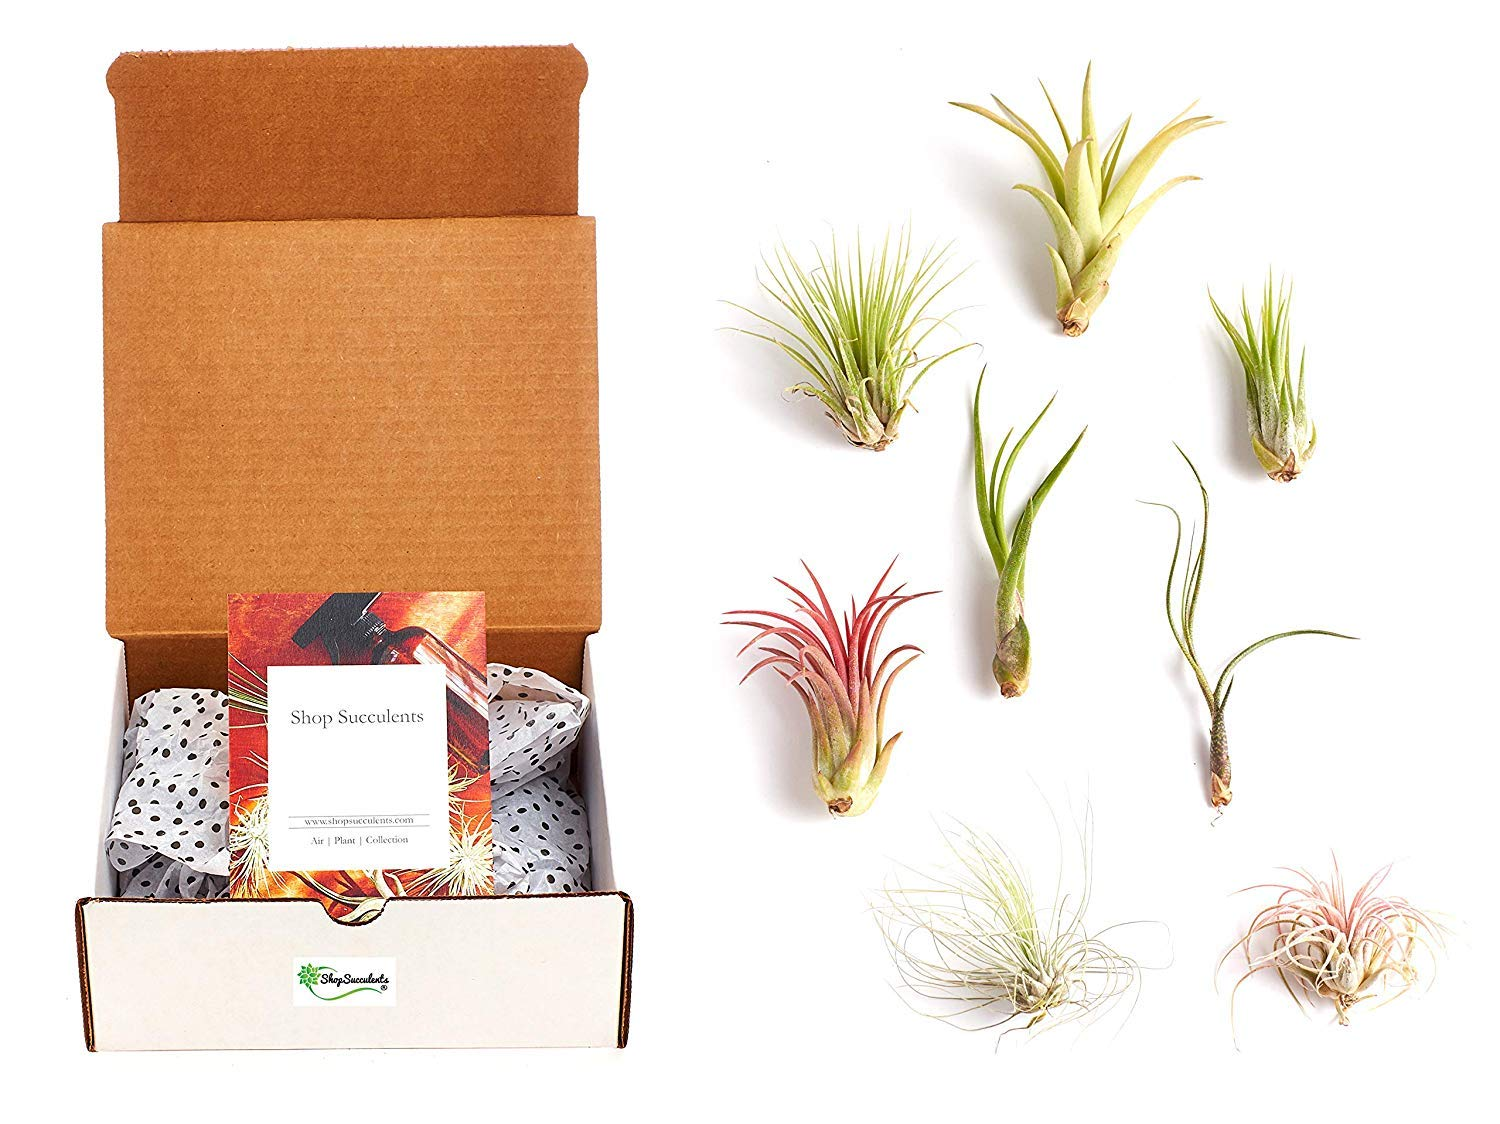 Shop Succulents | Assorted Collection of Tropical Tillandsia Air Plant Kit, Hand Selected Variety Pack | Collection of 6 by Shop Succulents